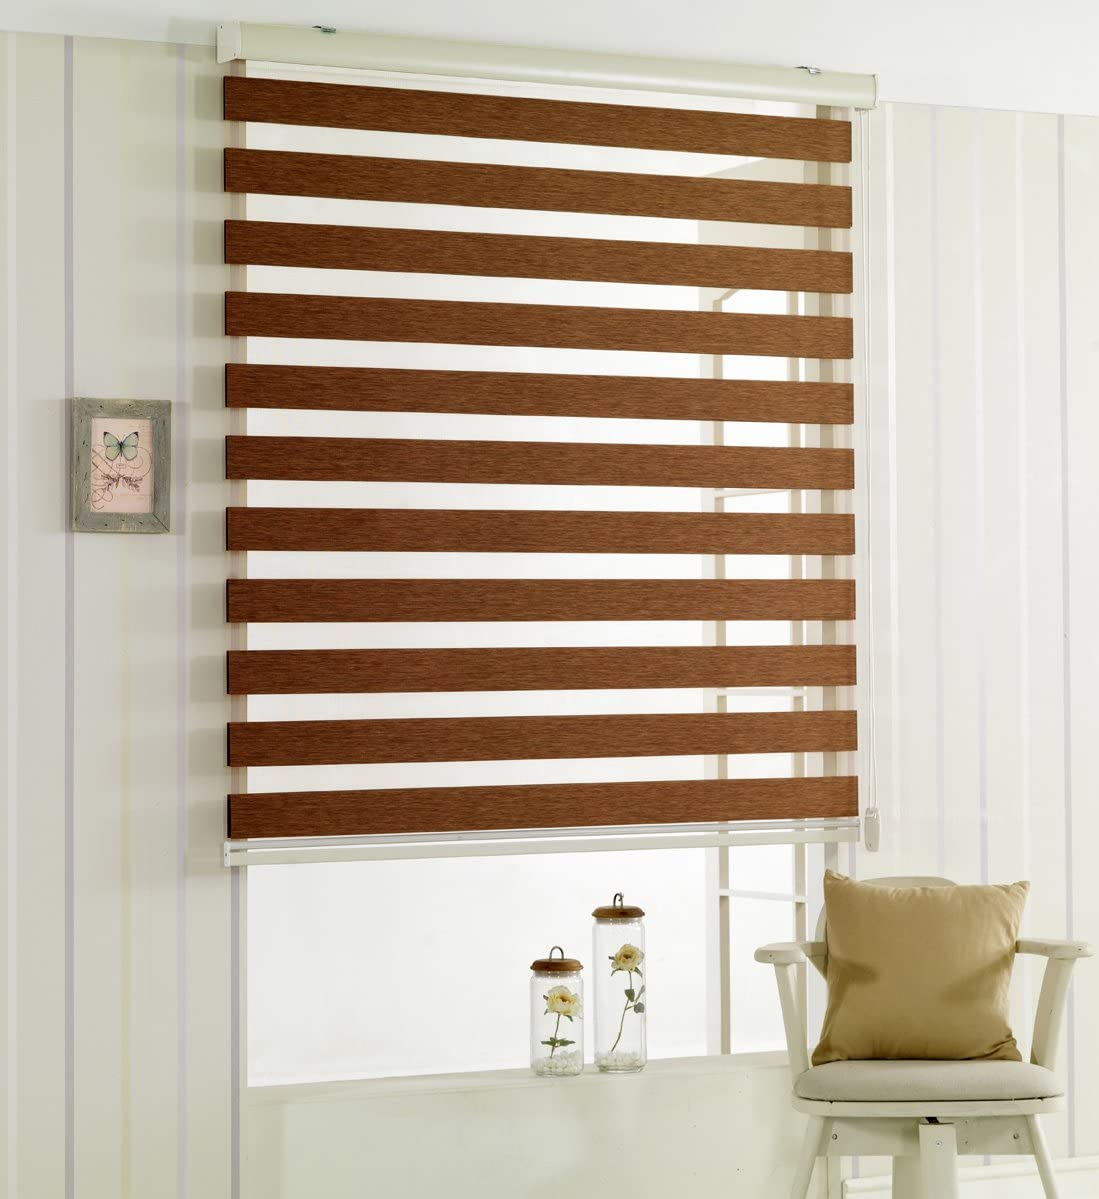 Custom Cut to Size, Winsharp Woodlook 107, Mocha_brown, W 107 x H 99 inch Zebra Roller Blinds, Dual Layer Shades, Sheer or Privacy Light Control, Day and Night Window Drapes, 20 to 110 inch wide